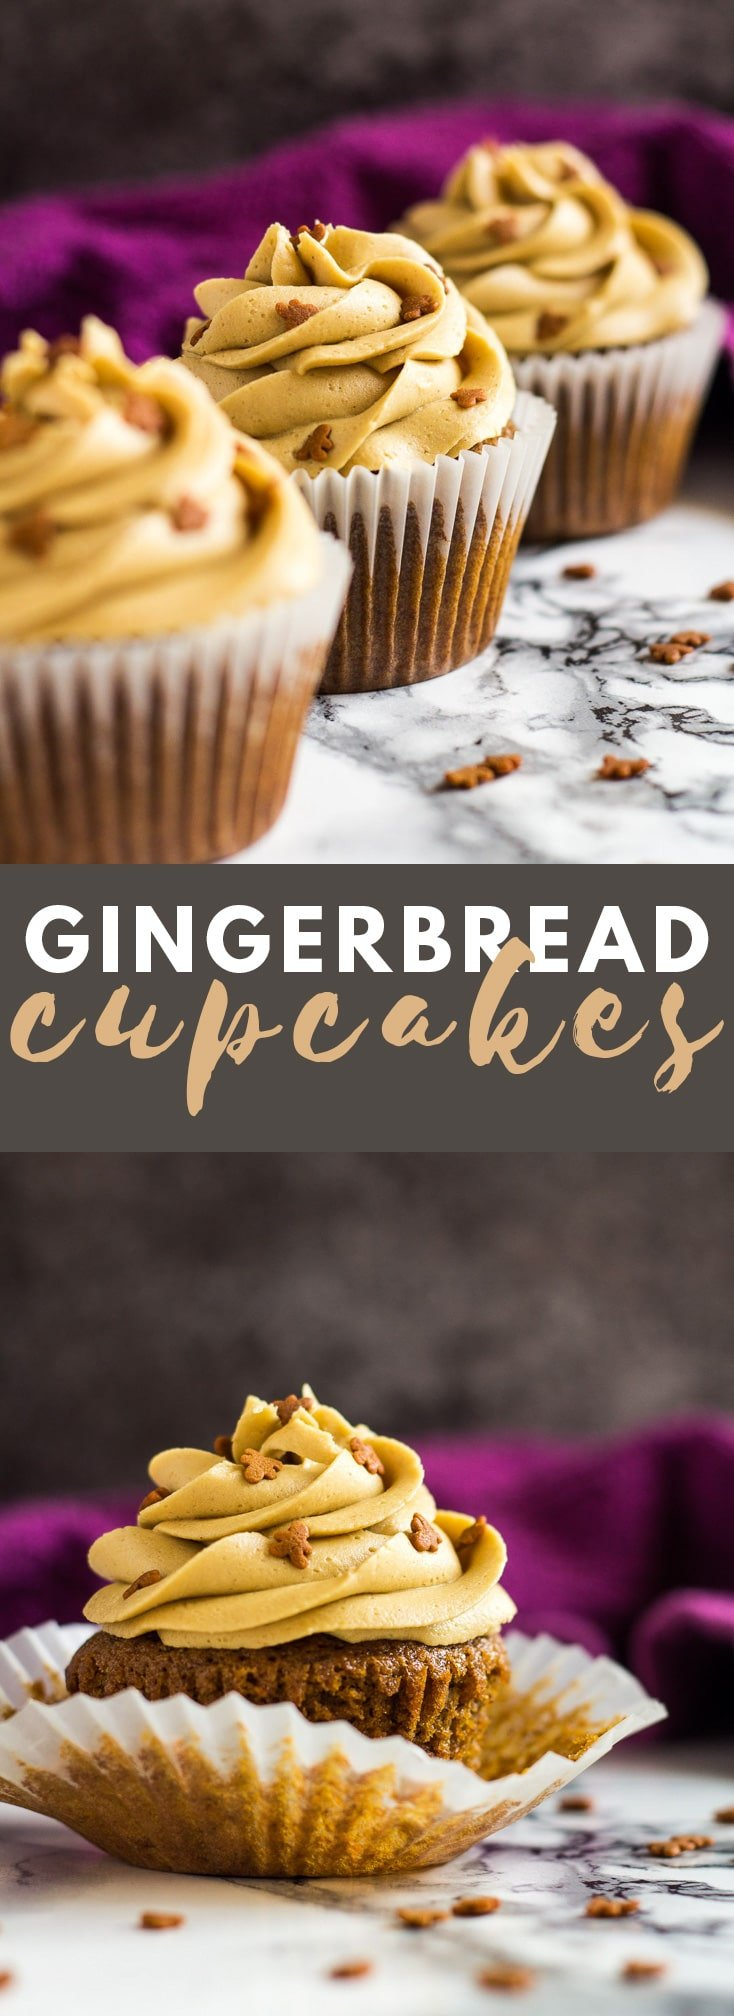 Gingerbread Cupcakes - Deliciously moist and fluffy gingerbread cupcakes that are loaded with flavour, and topped with a ginger buttercream frosting! #gingerbread #cupcakes #cupcakerecipes #christmasrecipes